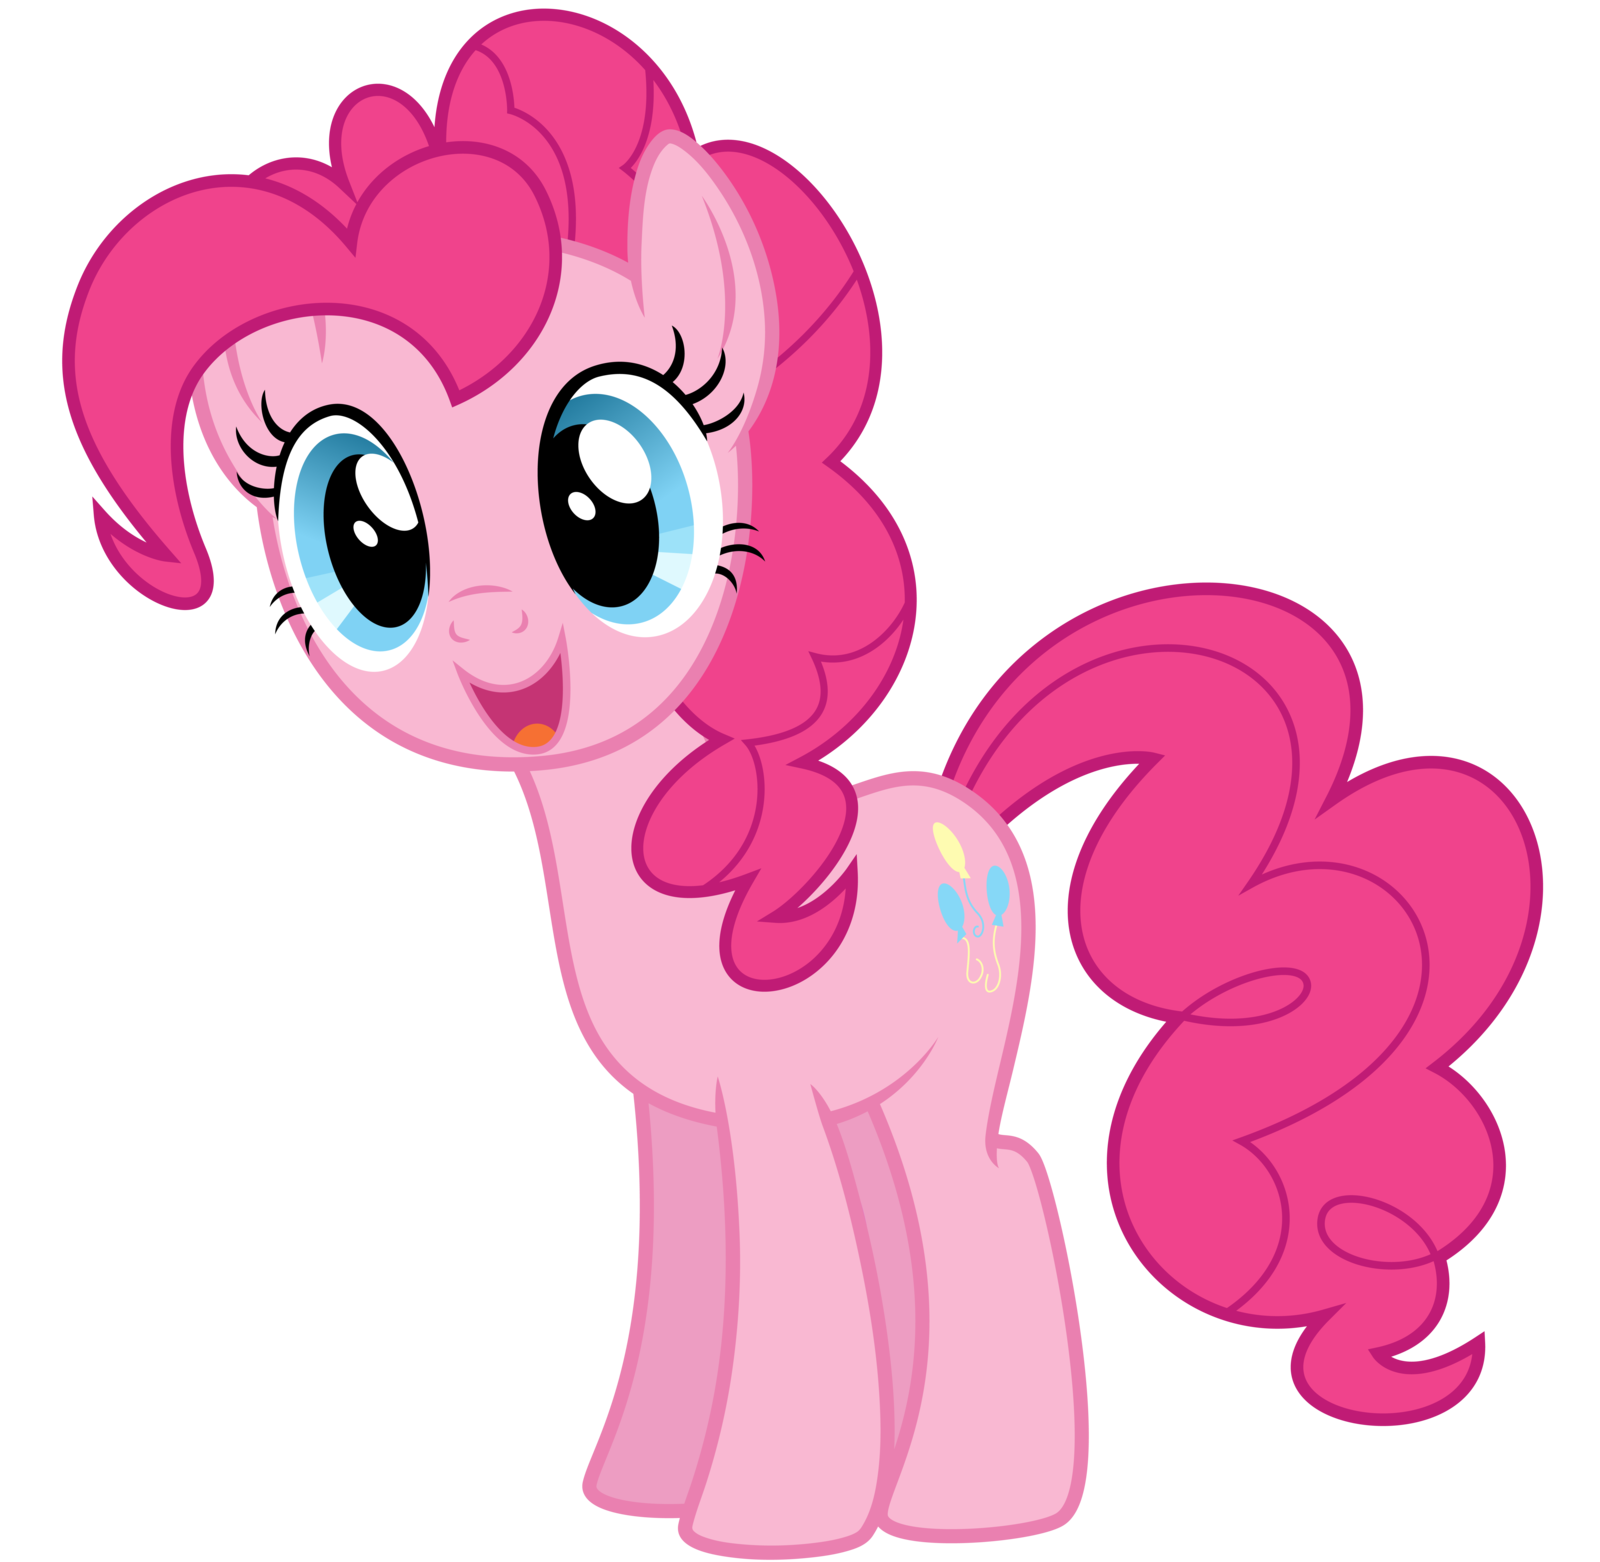 little pony png transparent little pony #28026